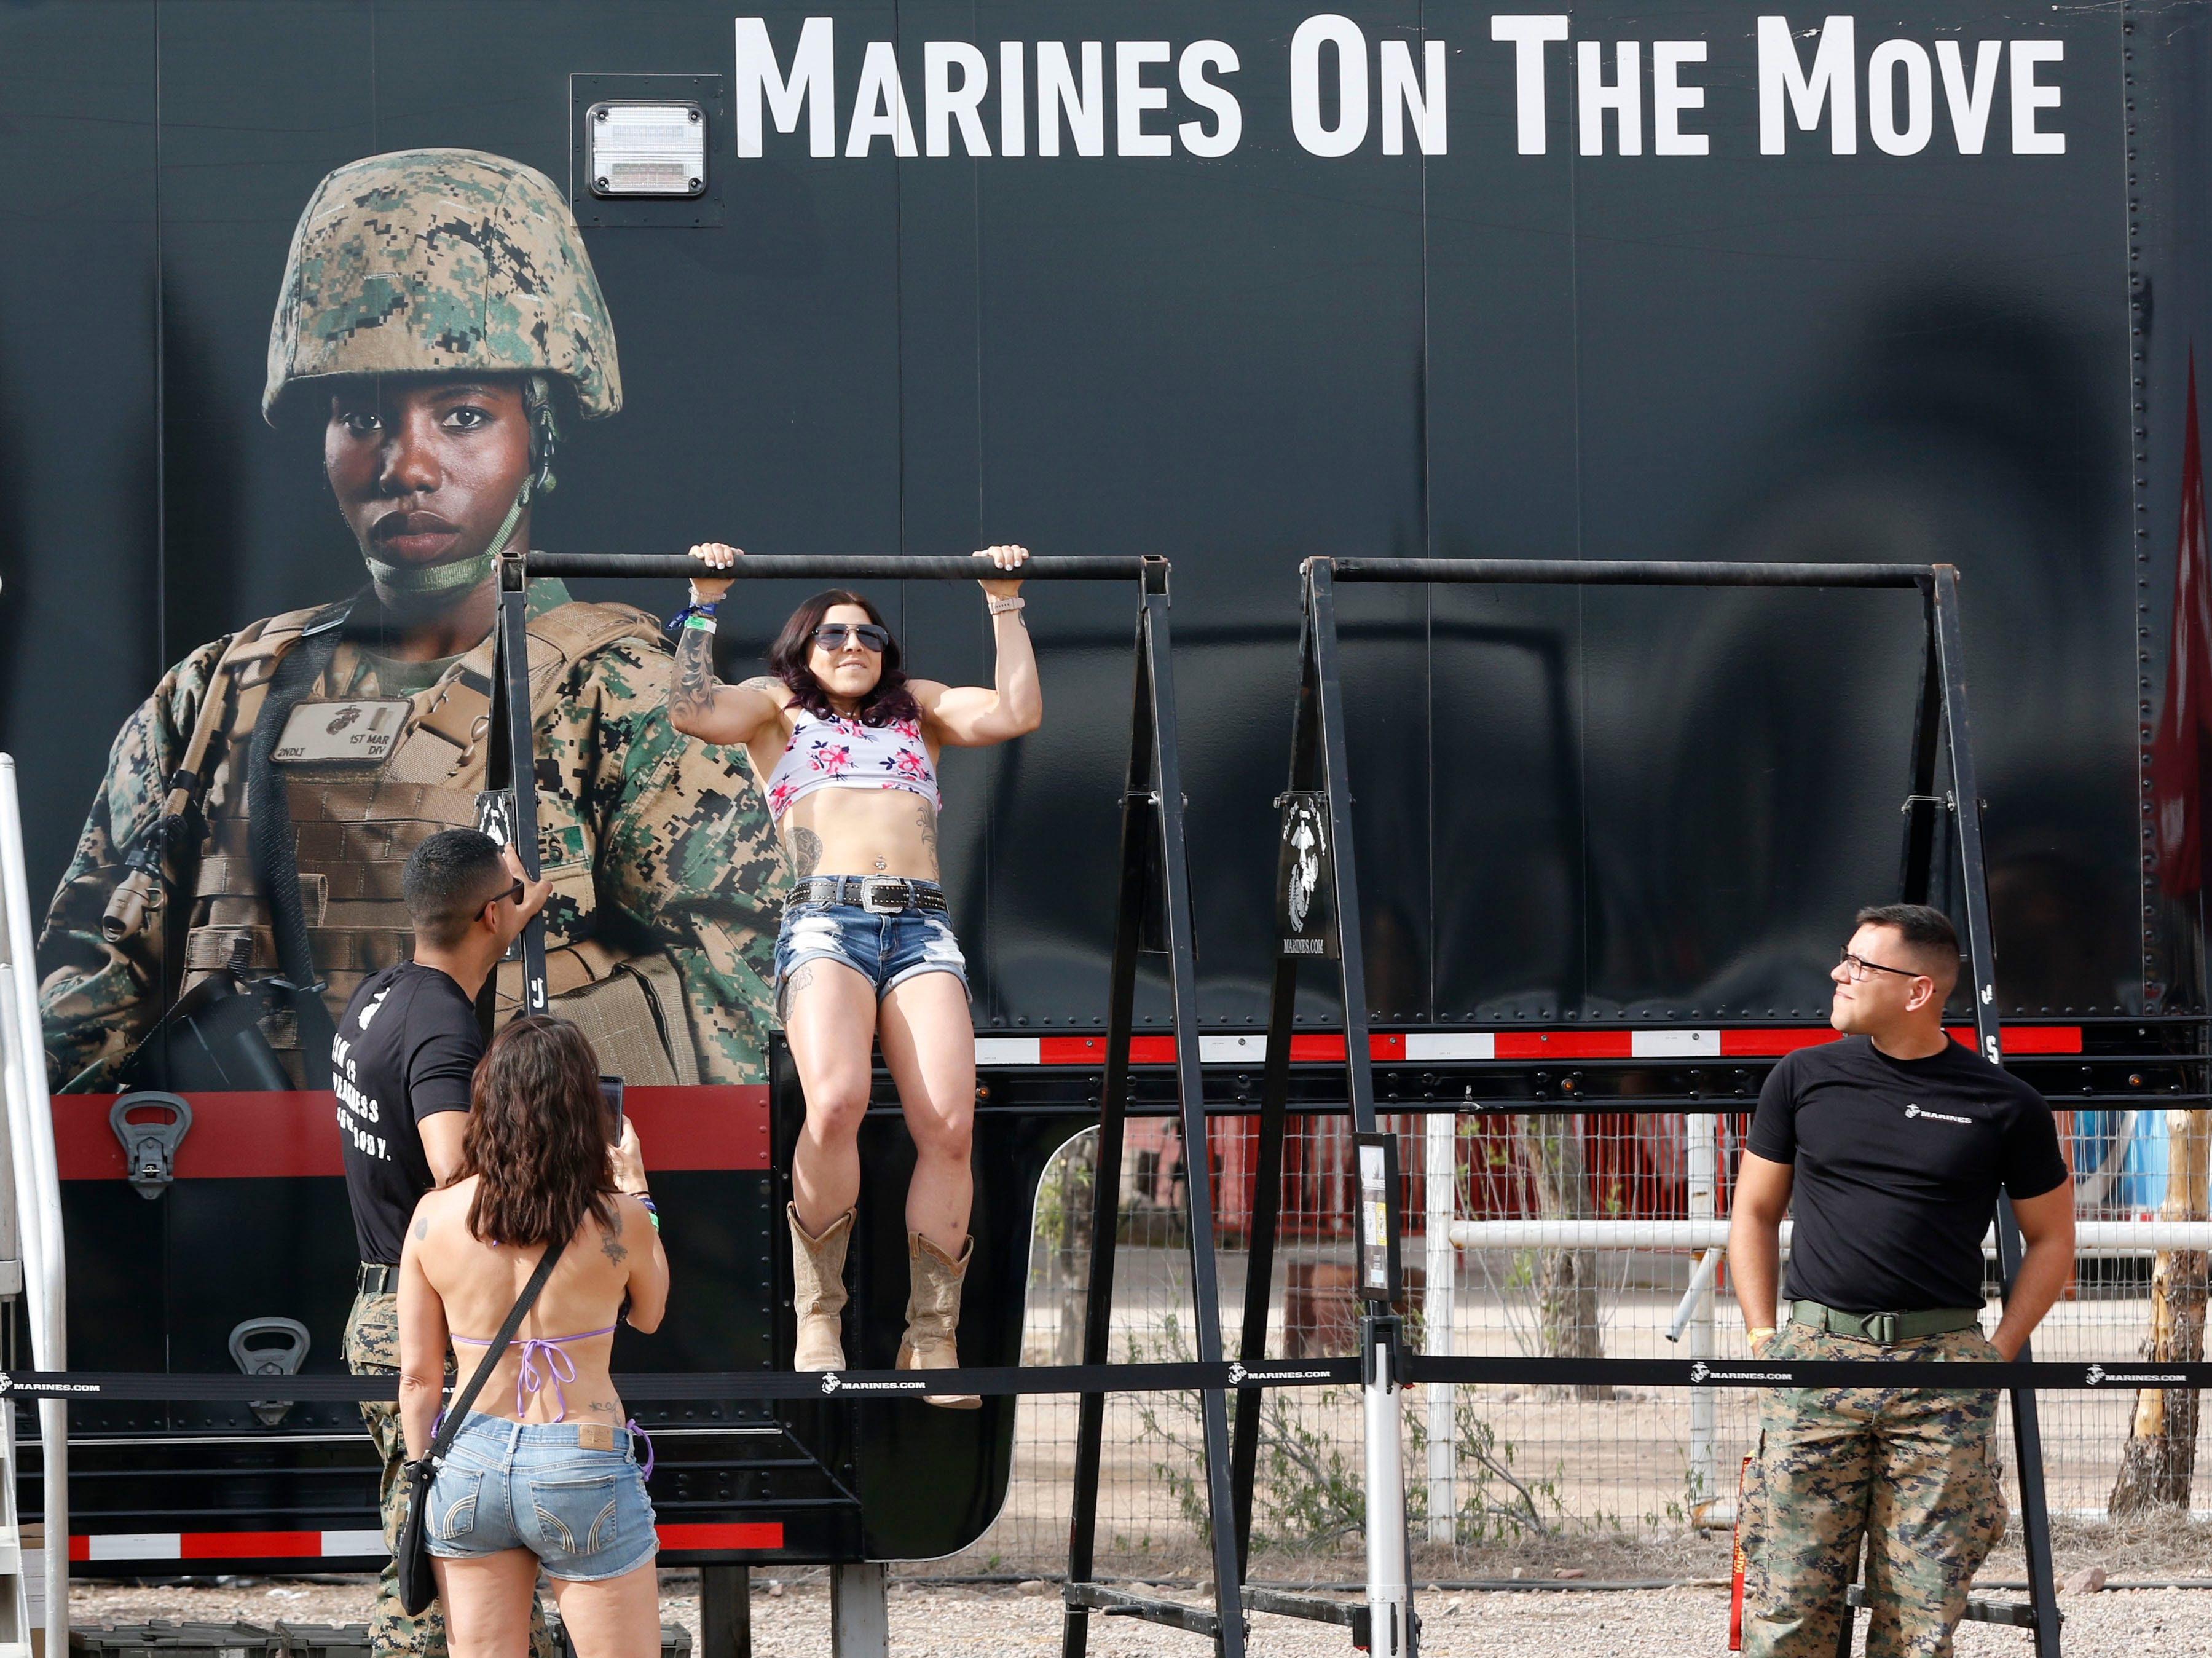 A Country & Western fan shows off her strength as she does a lot of pull-ups at the Marine's booth during Country Thunder Arizona on April 11, 2019, in Florence, Arizona.